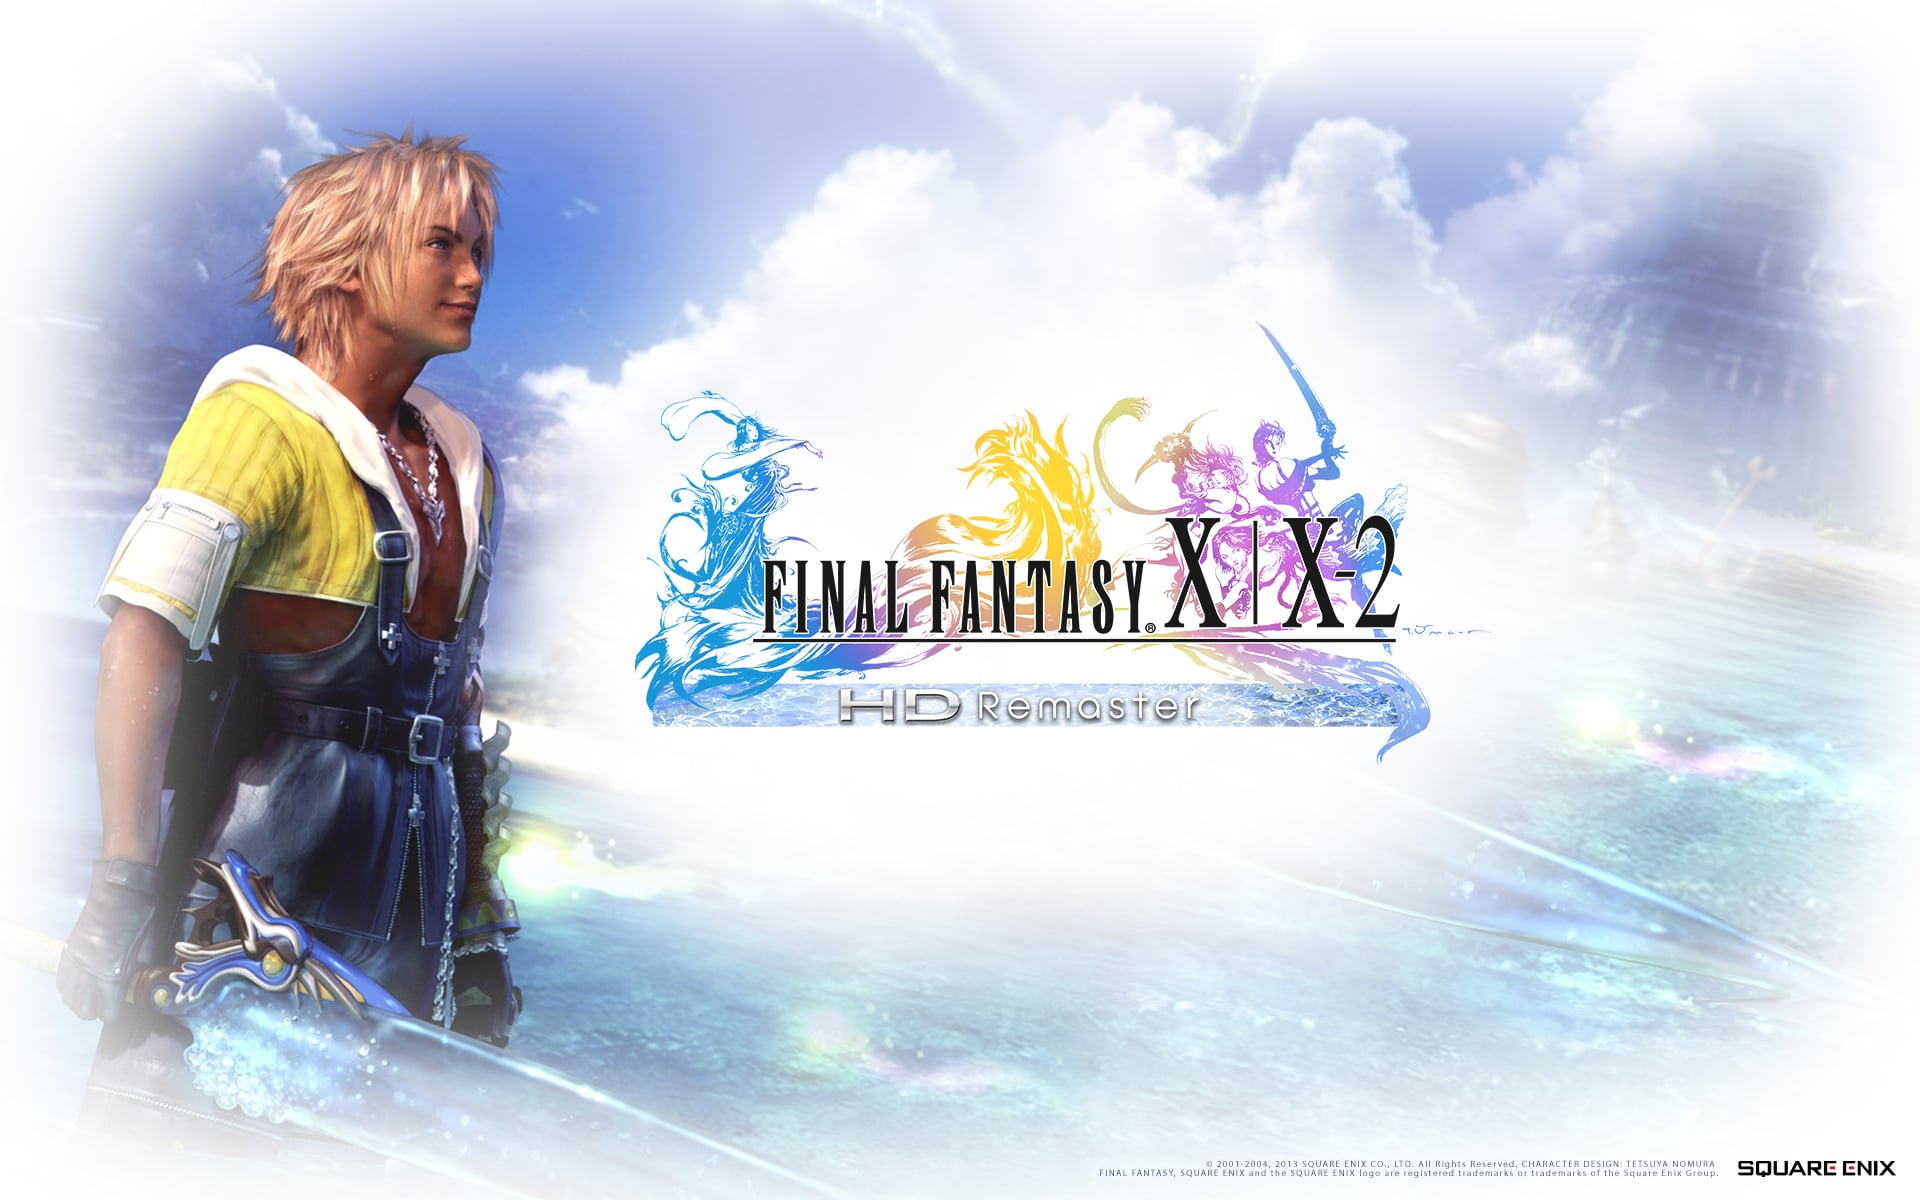 Europe: Final Fantasy X-2 HD Remaster a download code